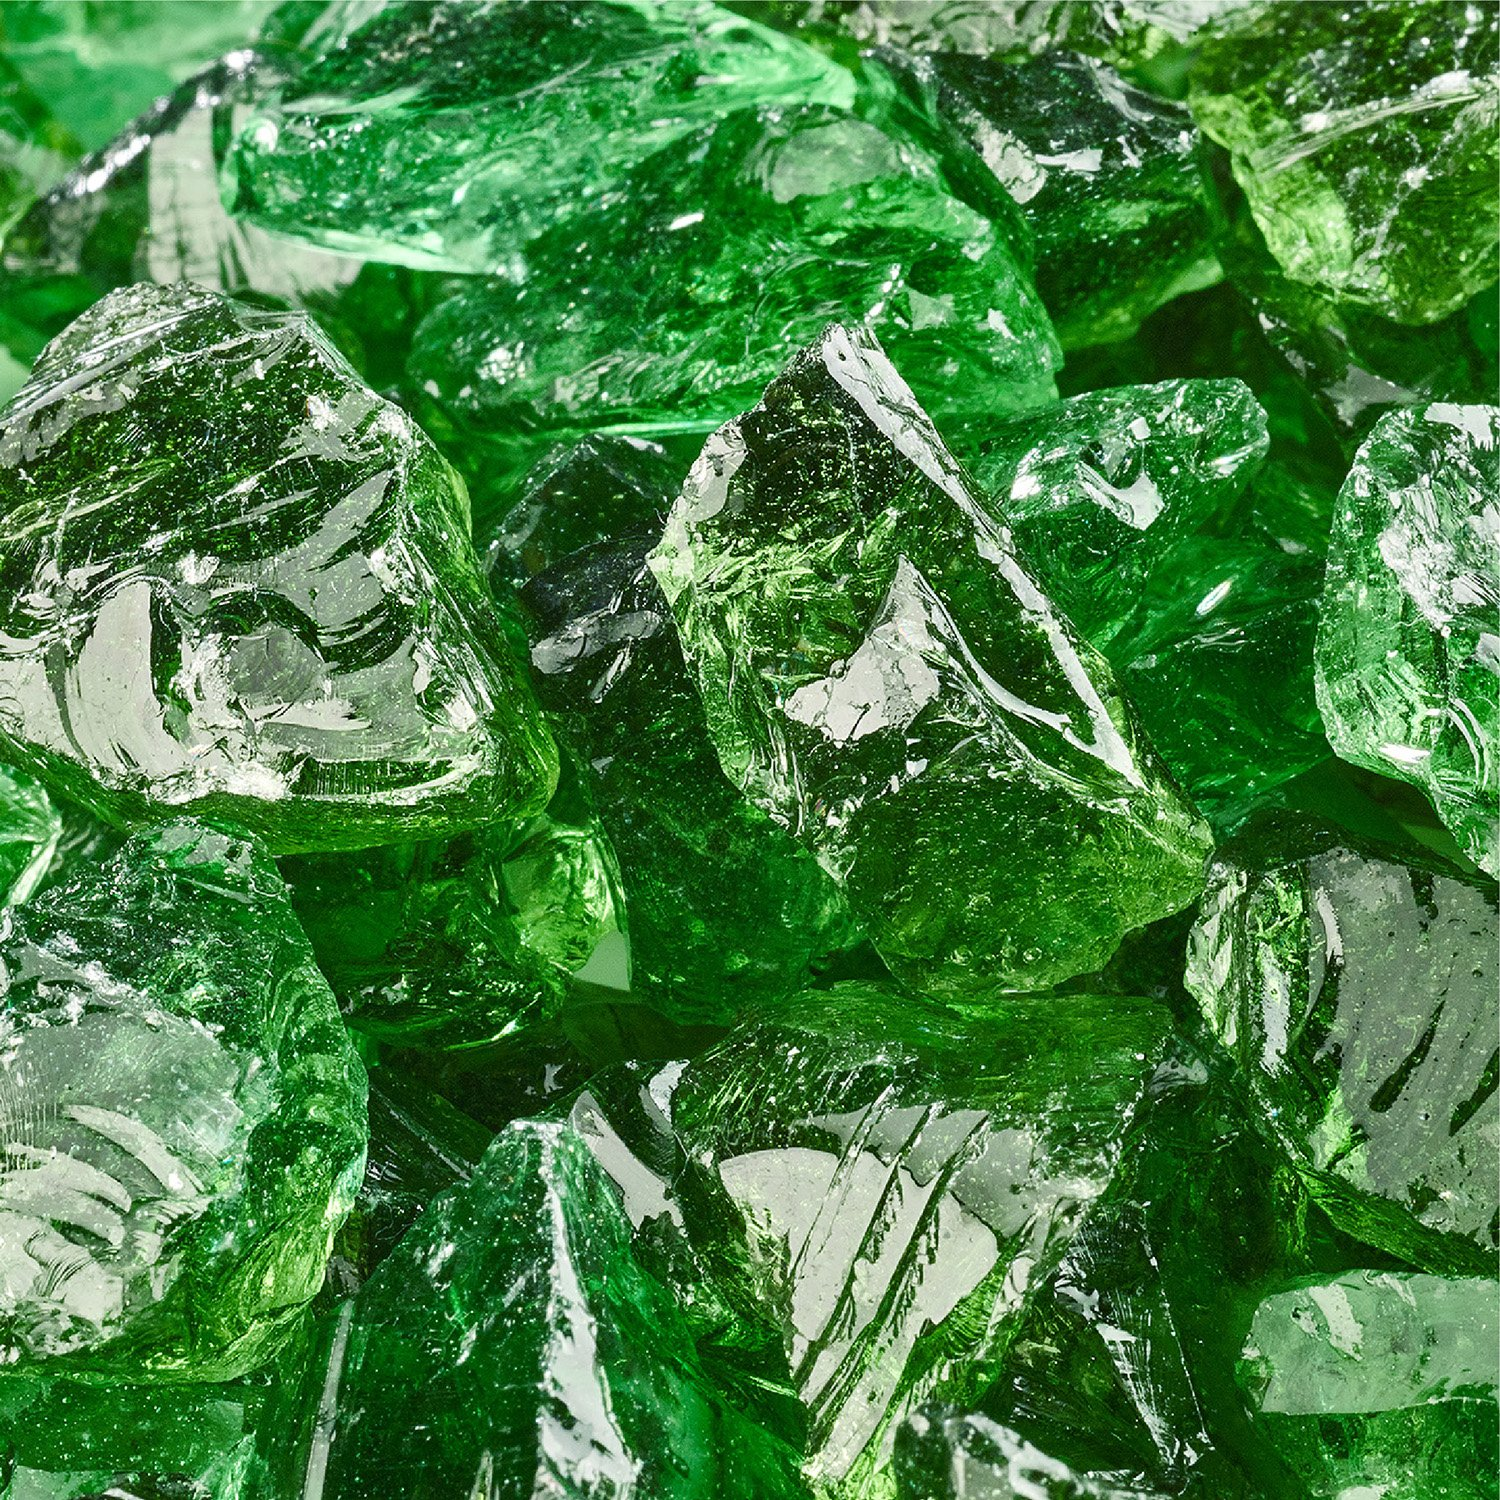 Emerald Green - Crushed Fire Glass for Indoor and Outdoor Fire Pits or Fireplaces | 10 Pounds | 1/2 Inch - 3/4 Inch